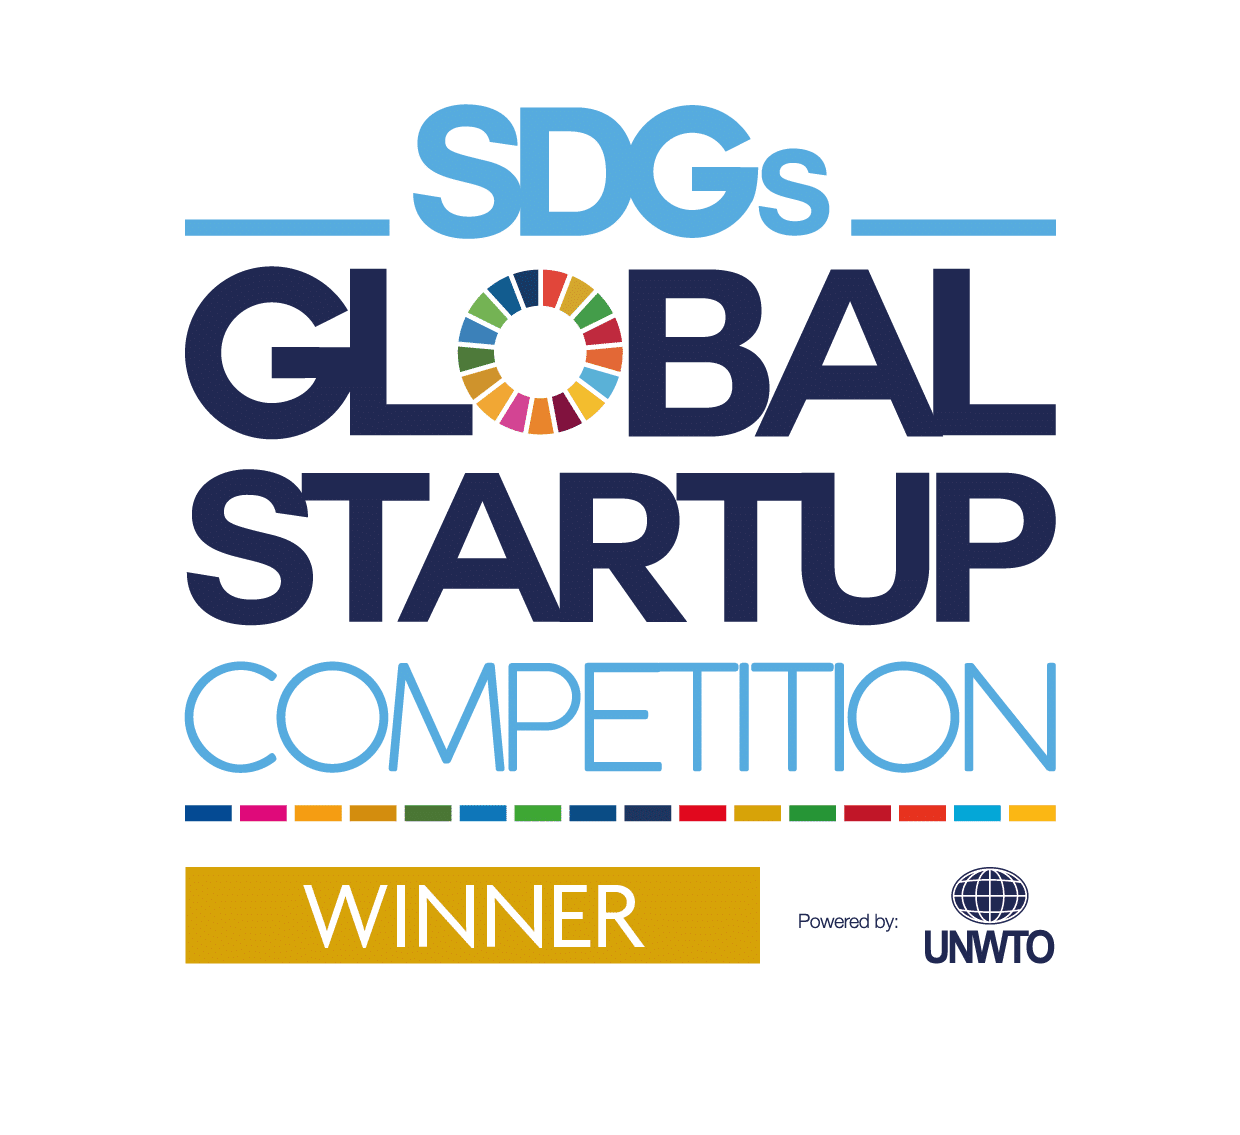 SDGs Global Startup Competition - UNWTO